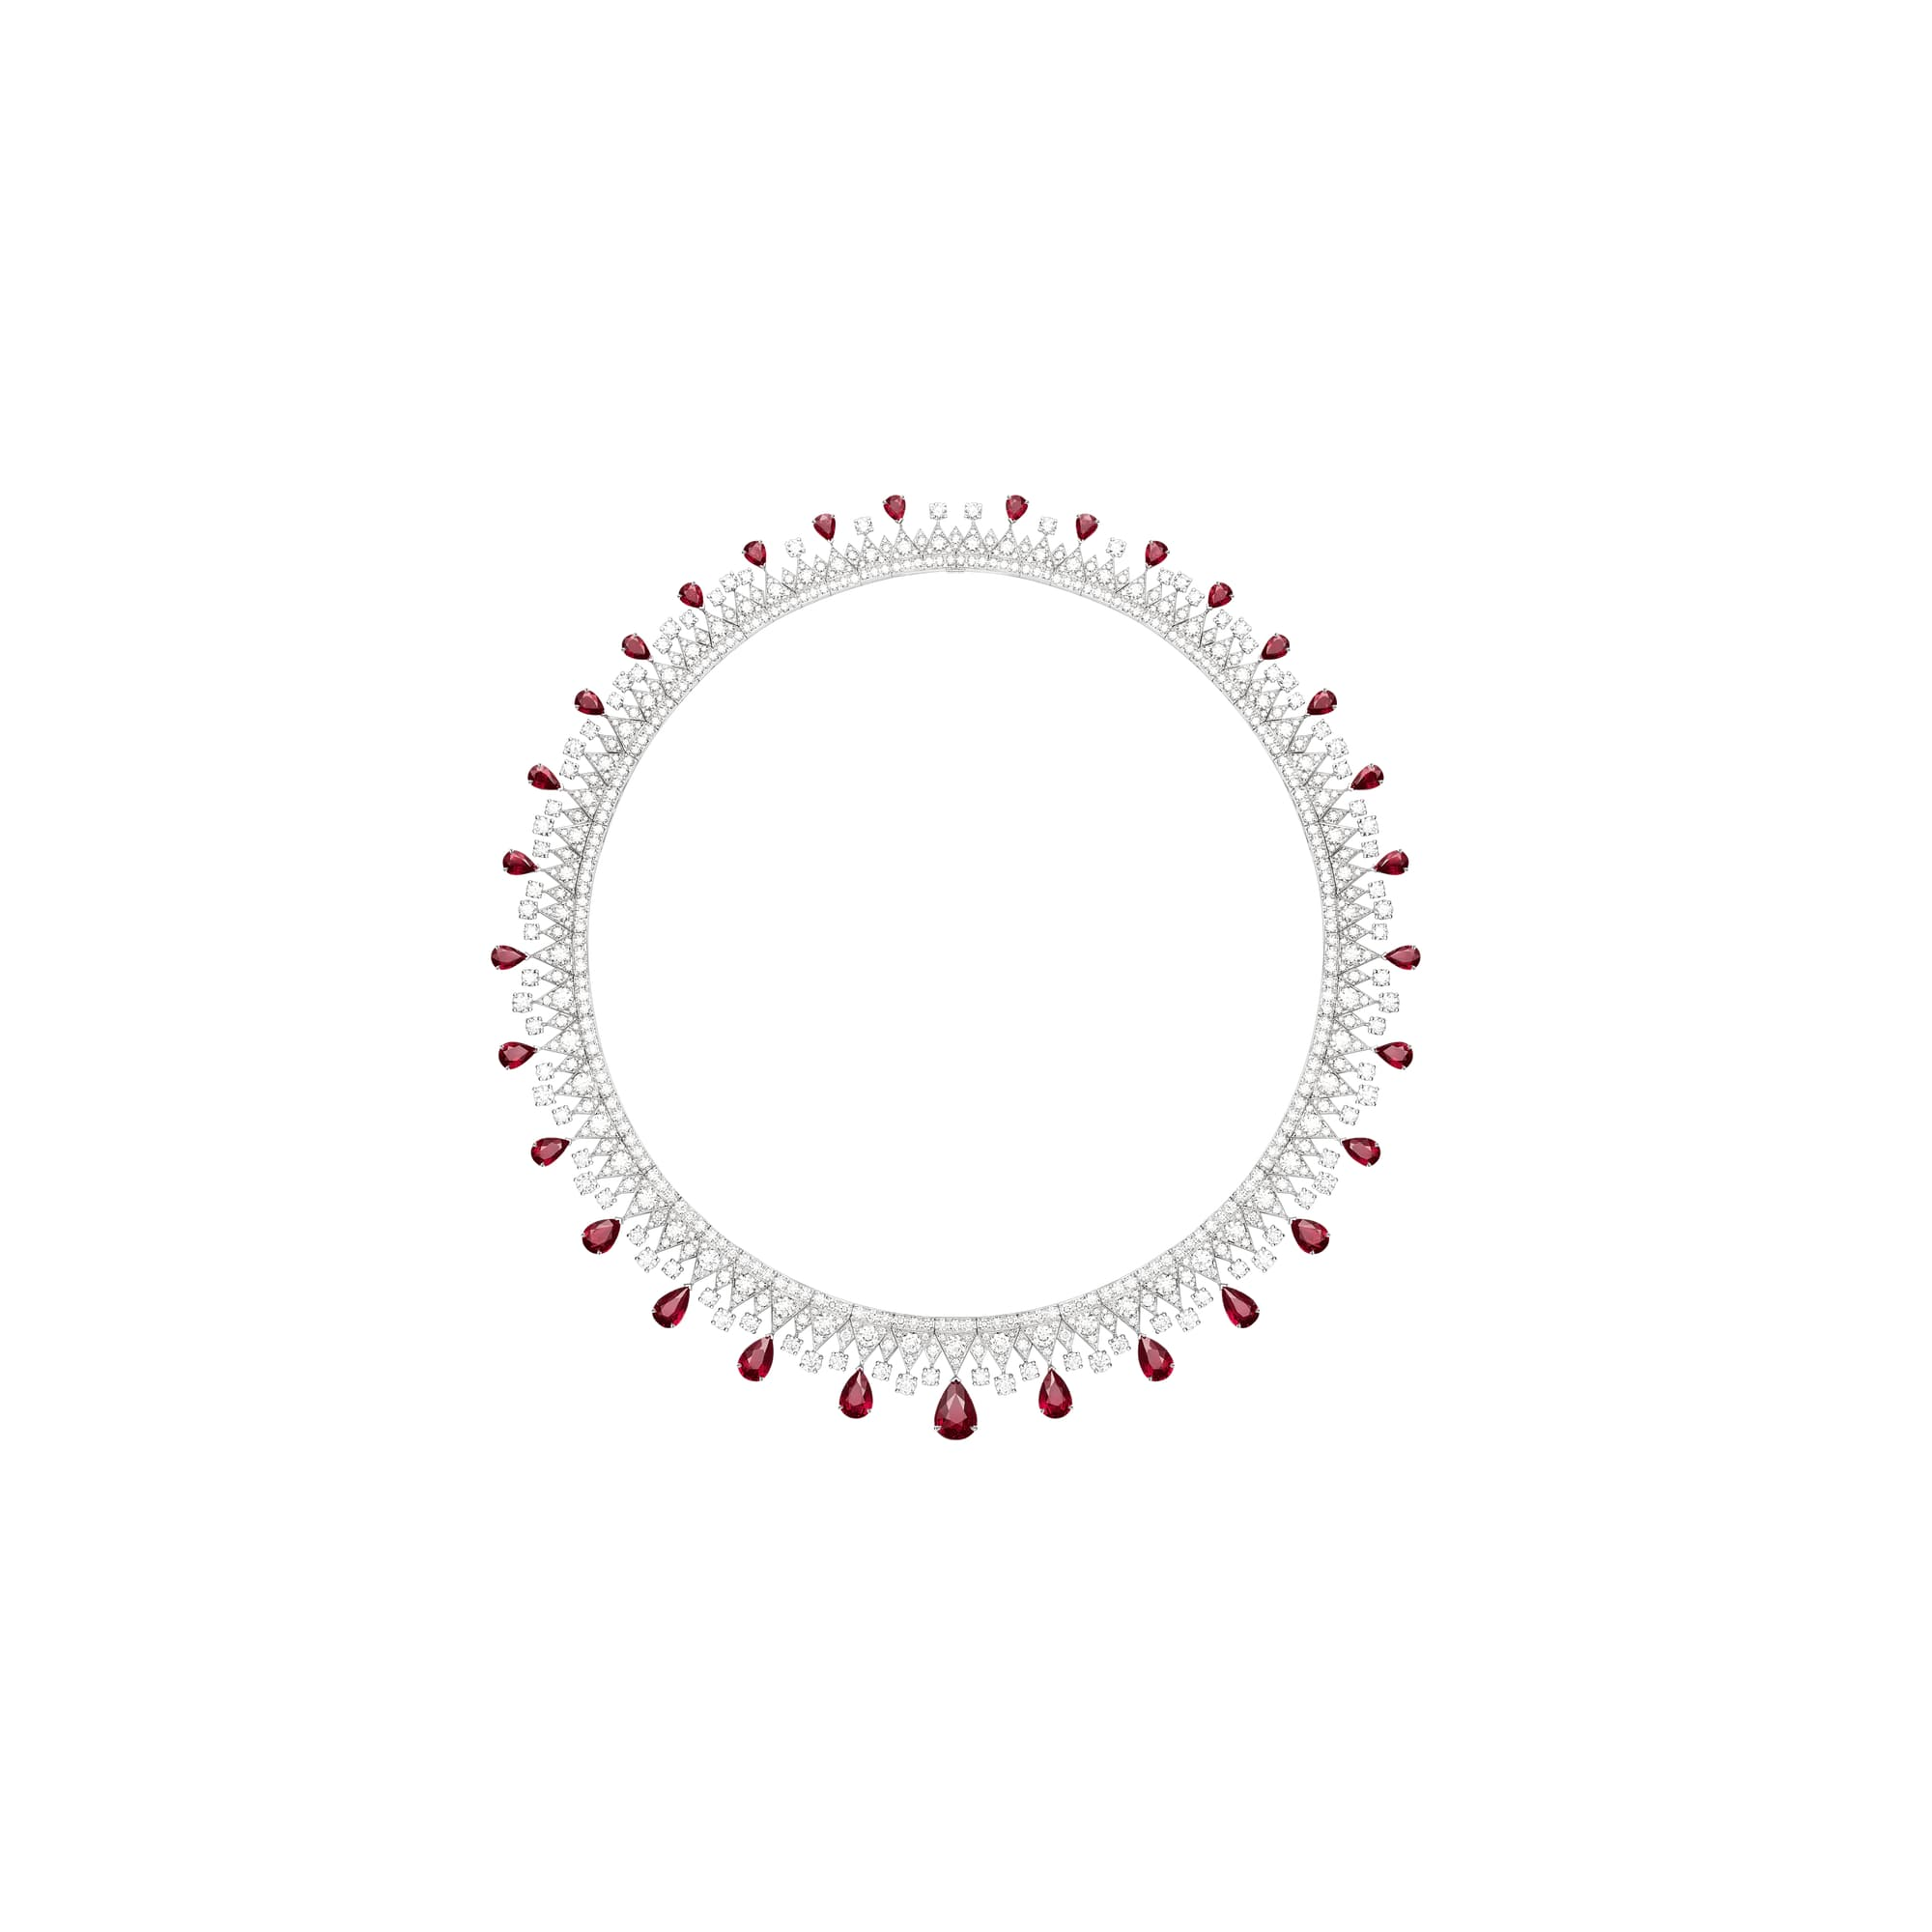 high jewellery diamond necklace set with rubies